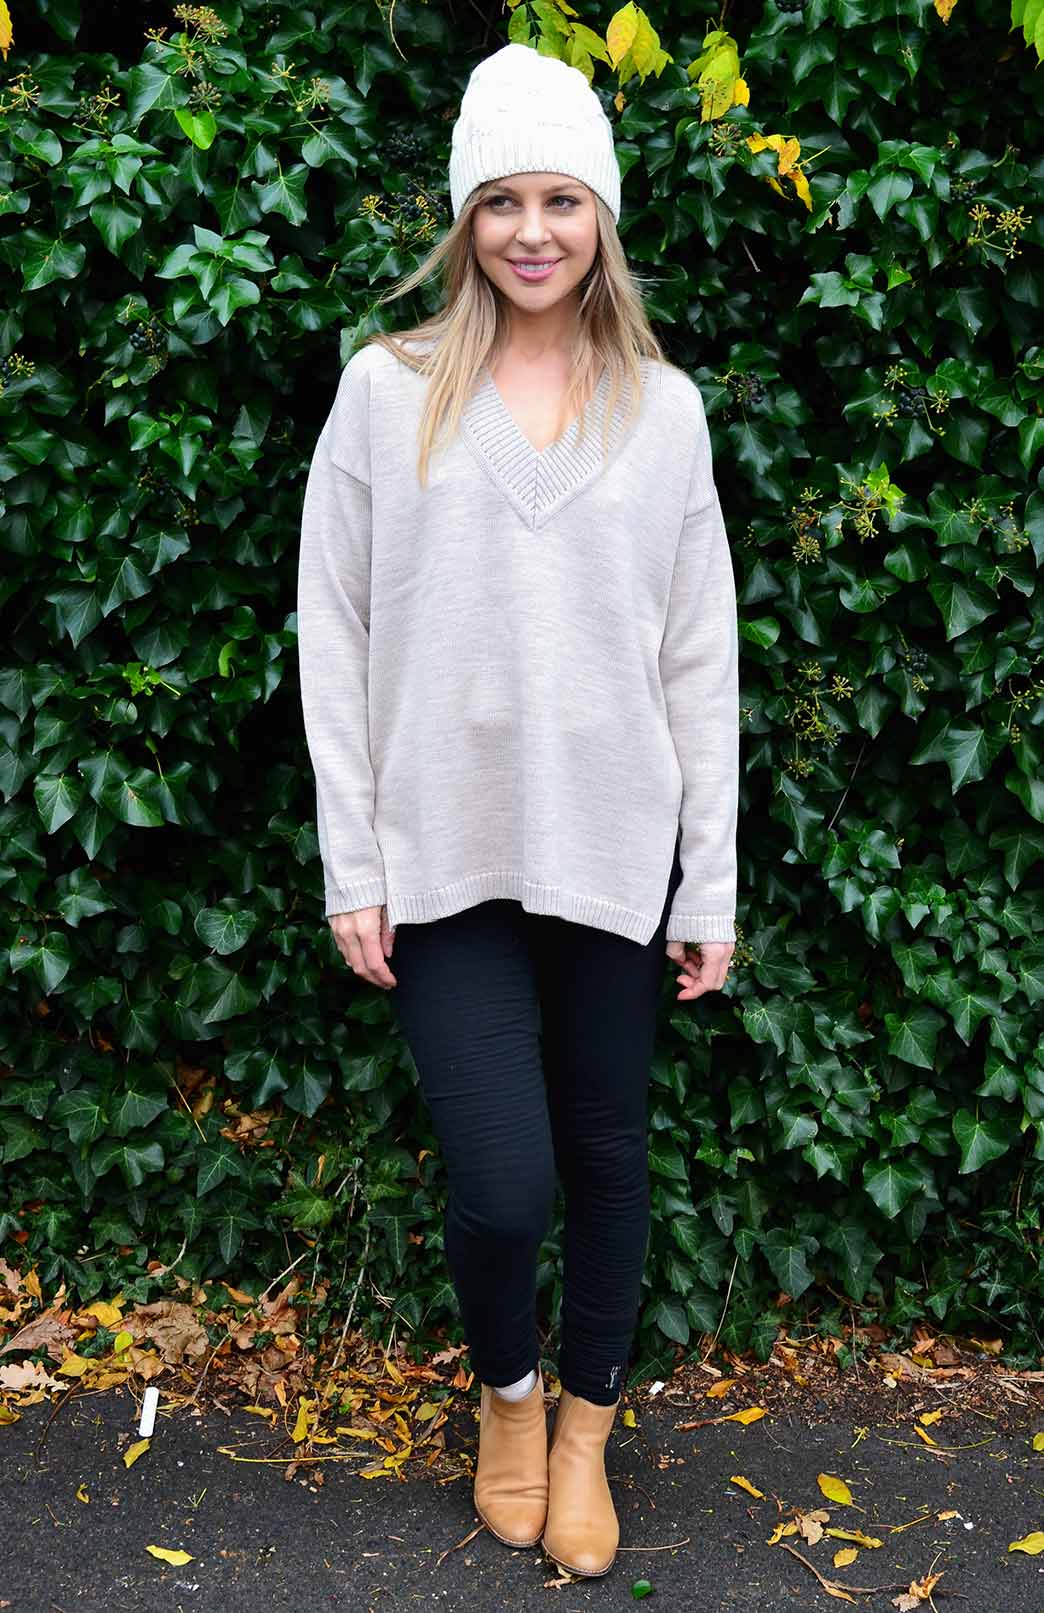 V-Neck Sweater - Women's Oatmeal V-Neck Chunky Knit Merino Wool Sweater with side splits - Smitten Merino Tasmania Australia